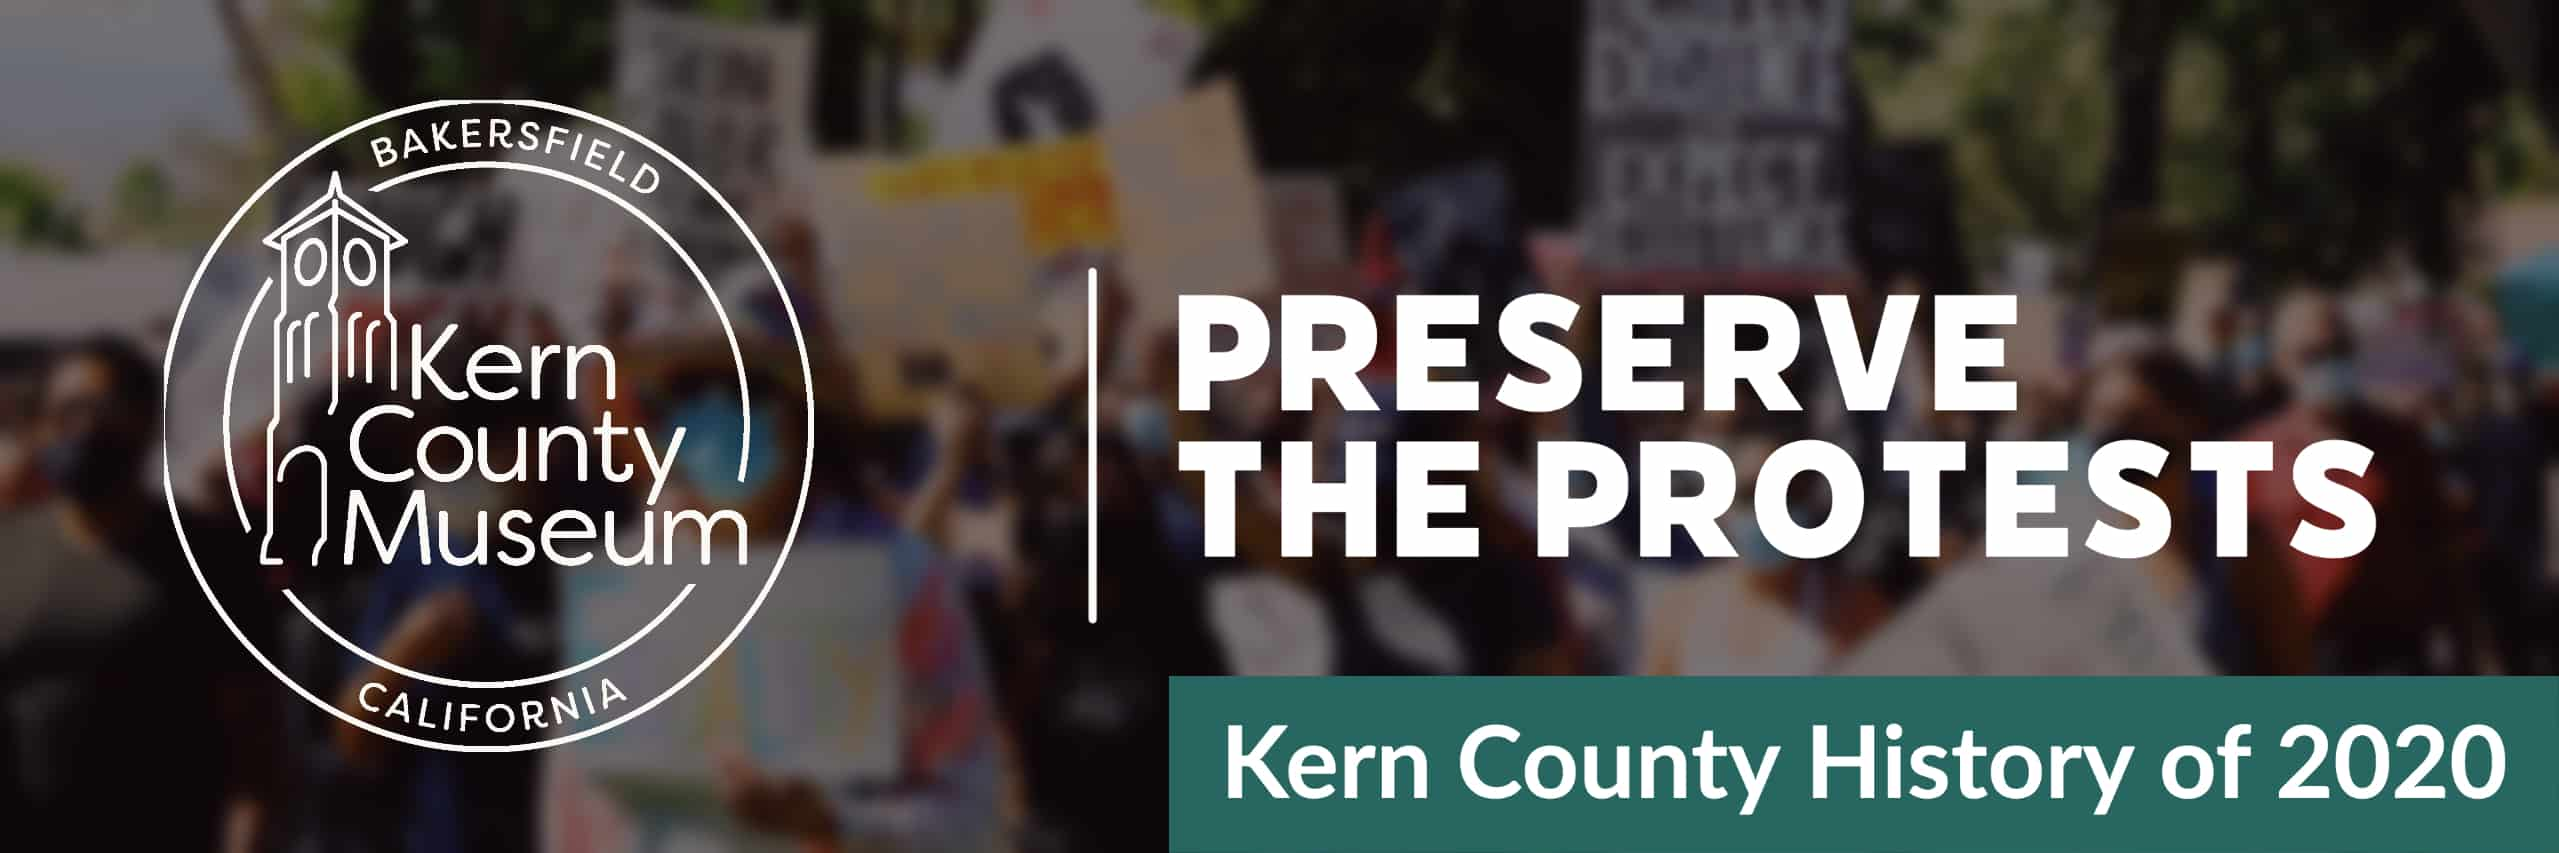 KErn County Museum preserve the protest